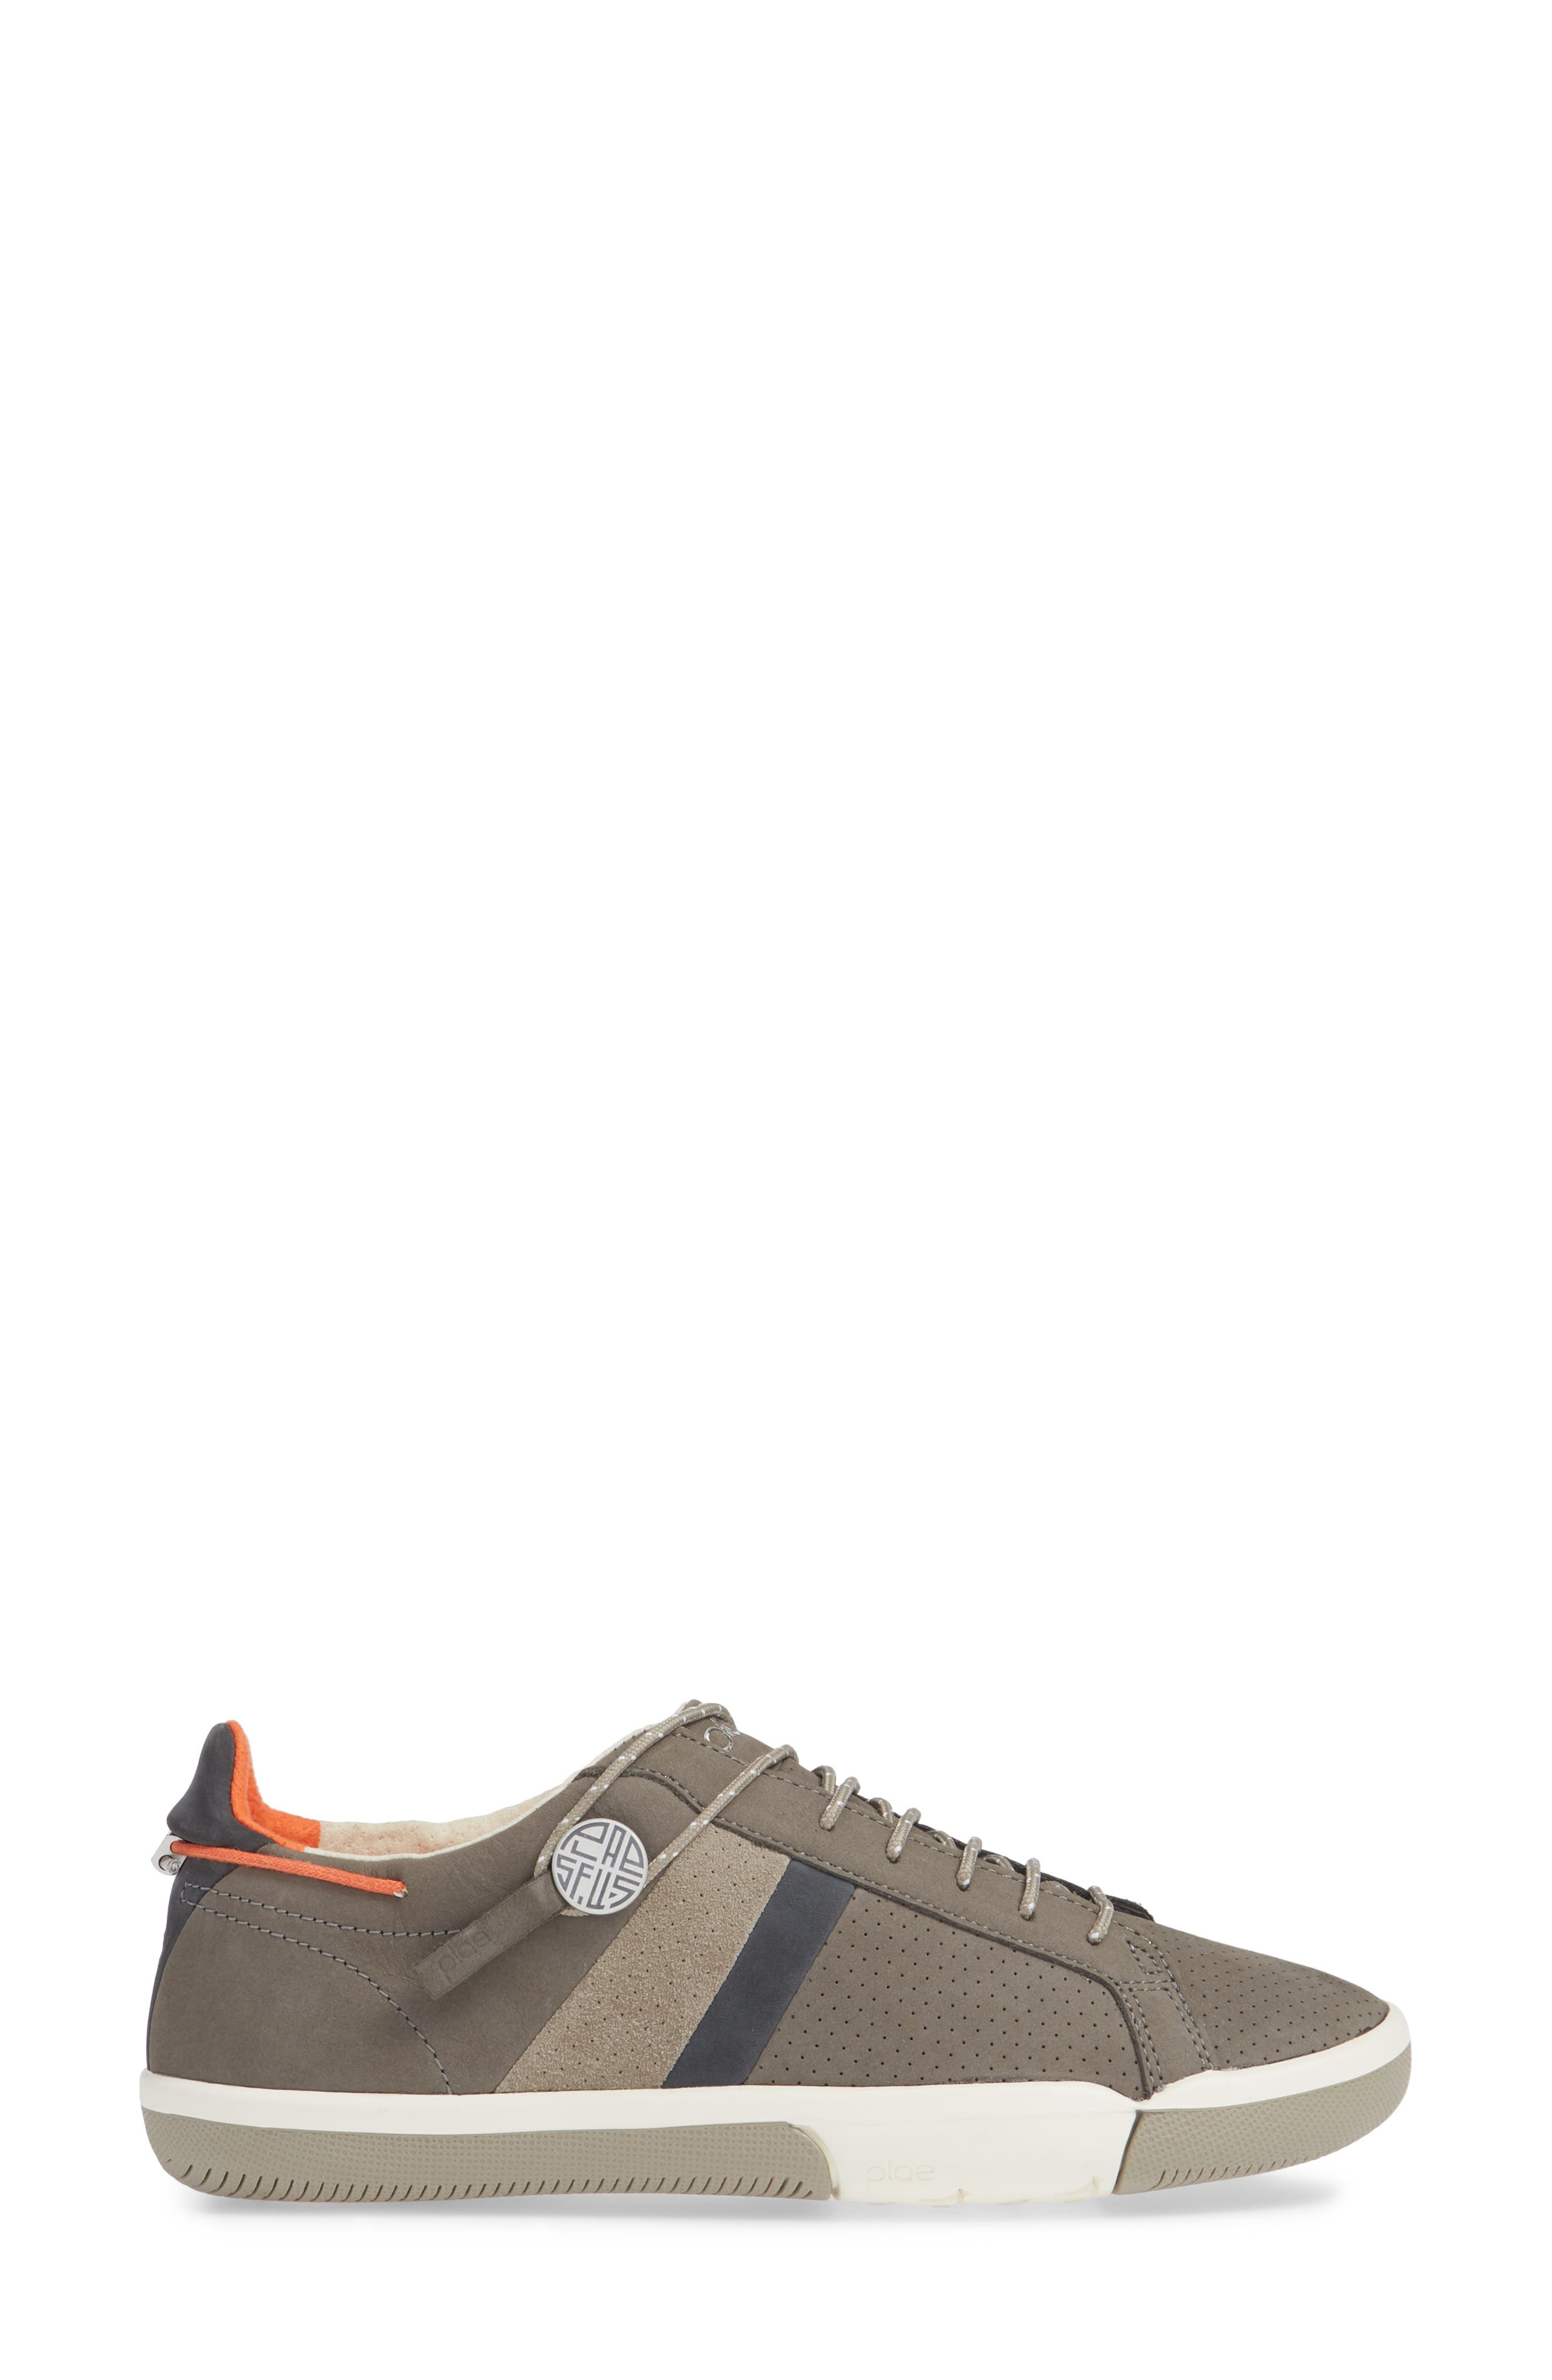 Mulberry Sneaker,                             Alternate thumbnail 3, color,                             GREY NUBUCK LEATHER